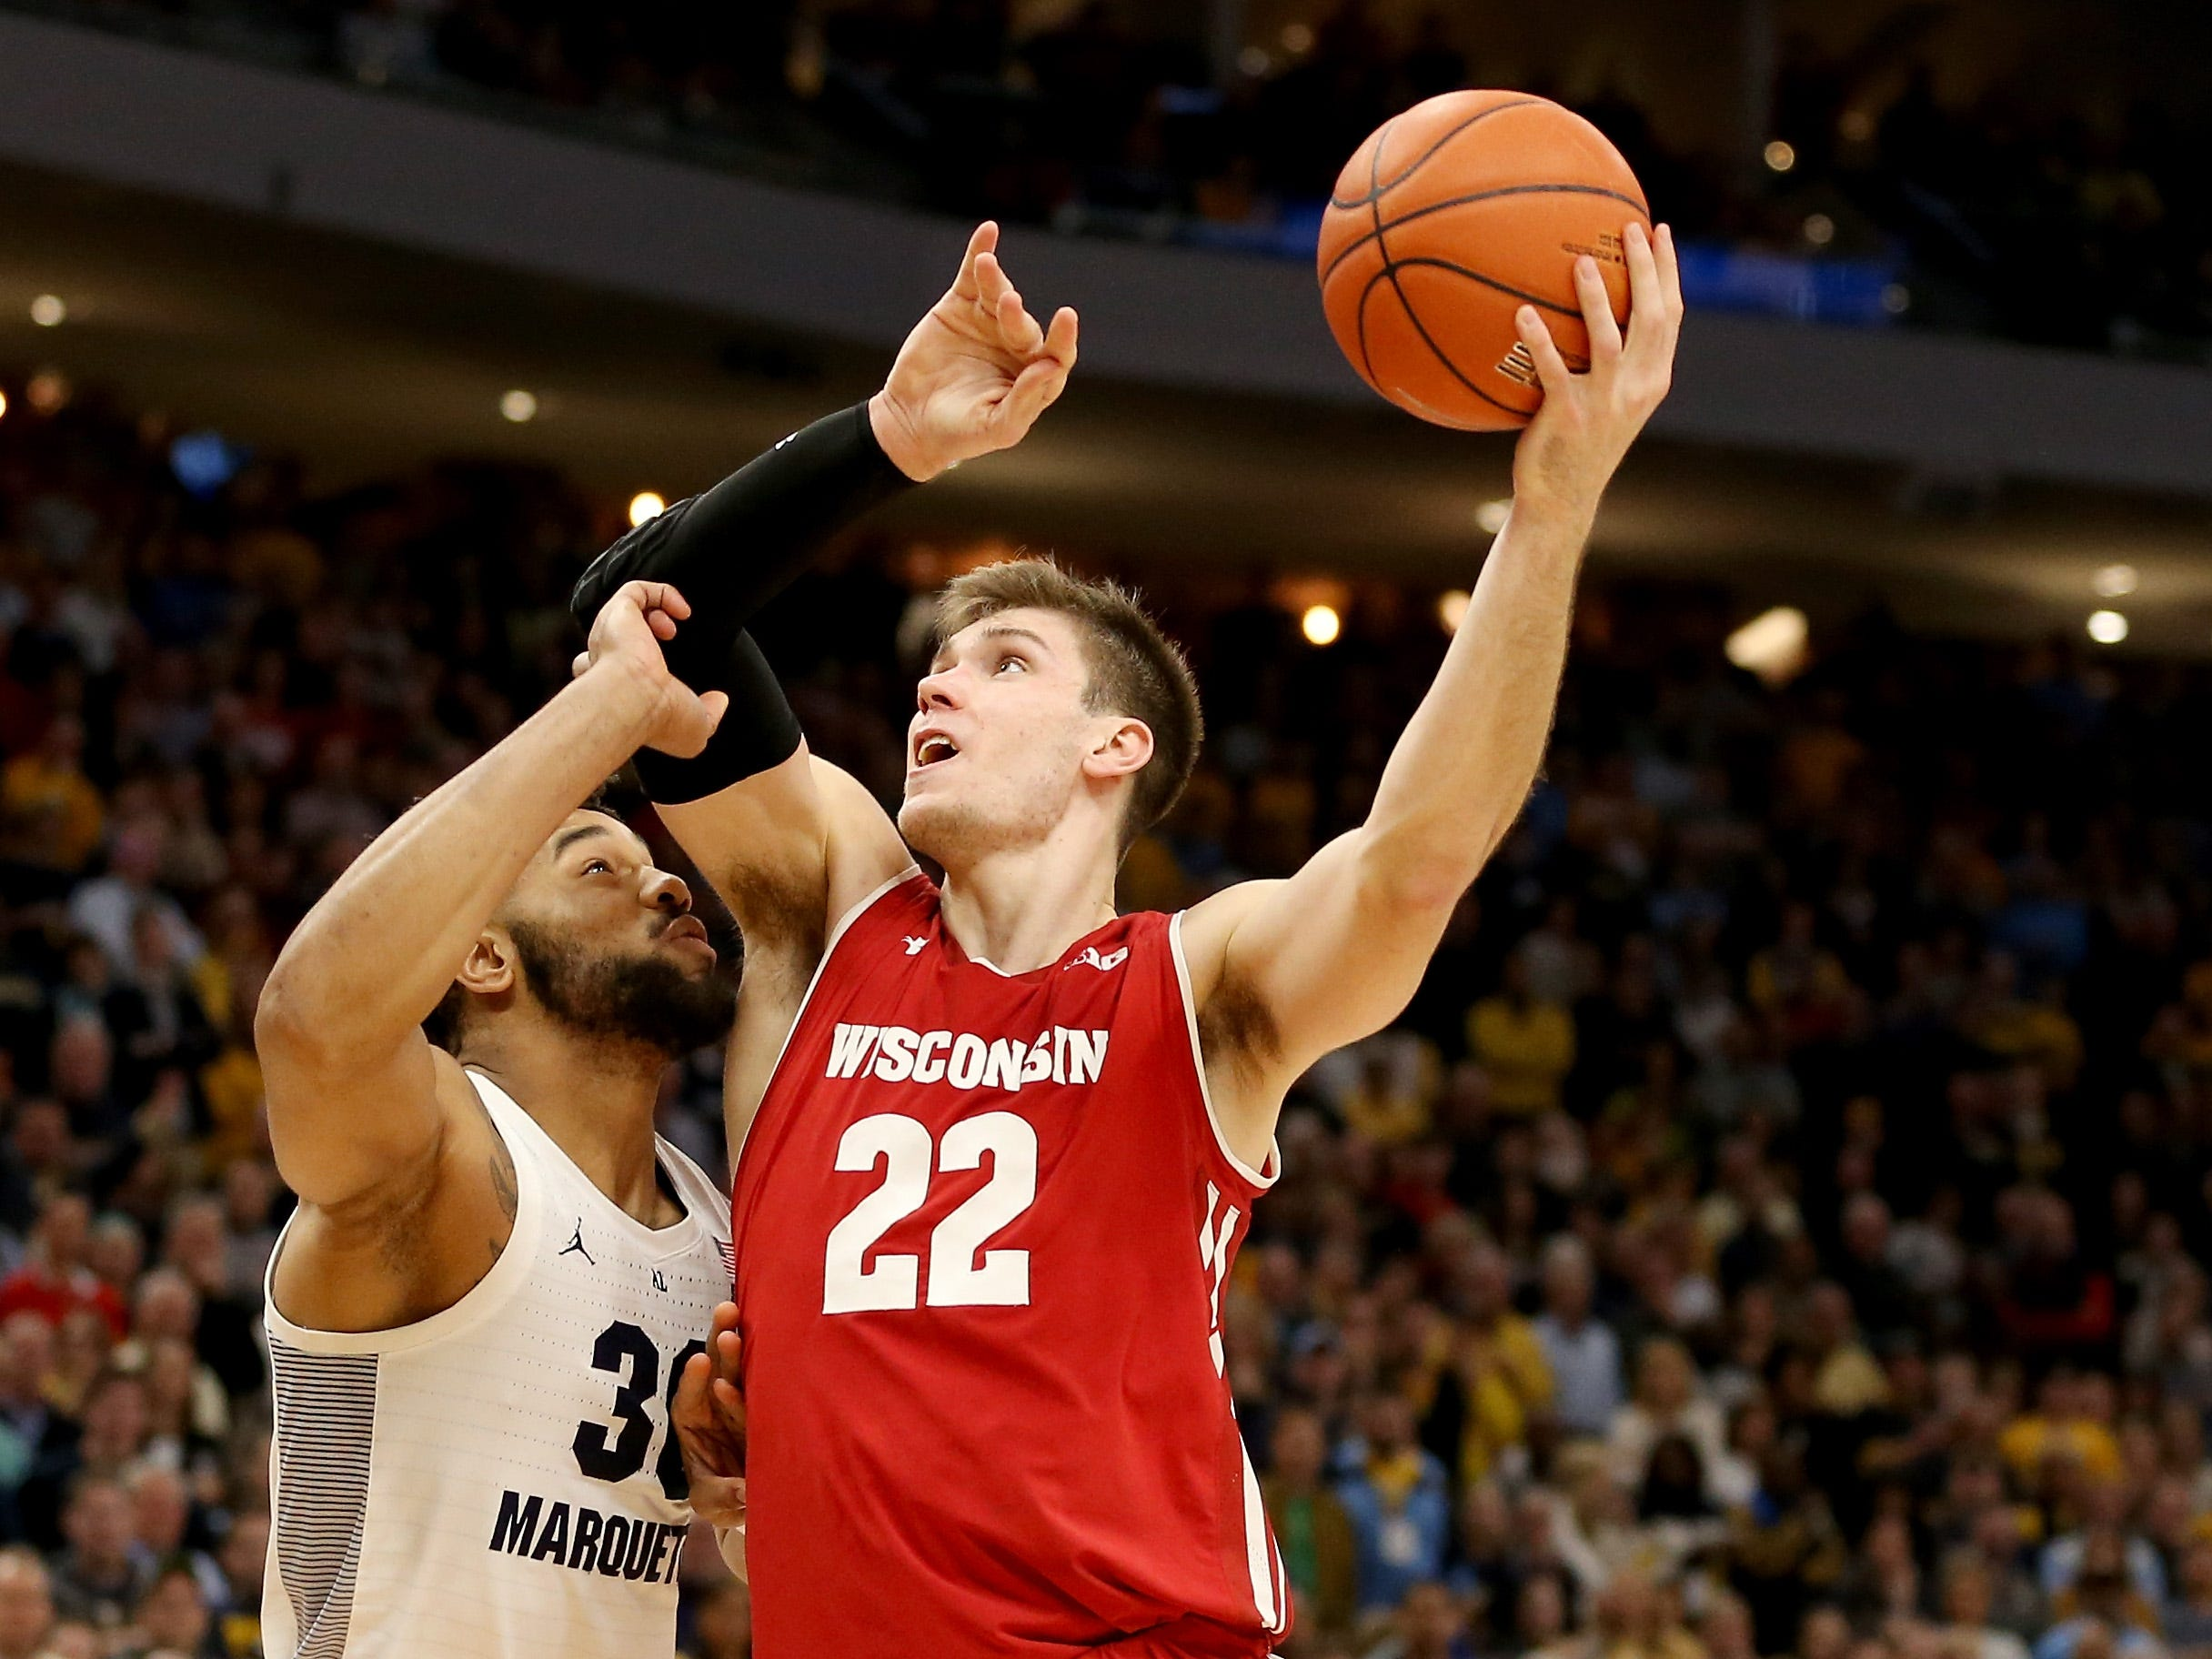 No. 3: Wisconsin Badgers (8-2, 2-0). Senior forward Ethan Happ is averaging 19.3 points, 10.8 rebounds, 4.9 assists and 1.6 blocks.